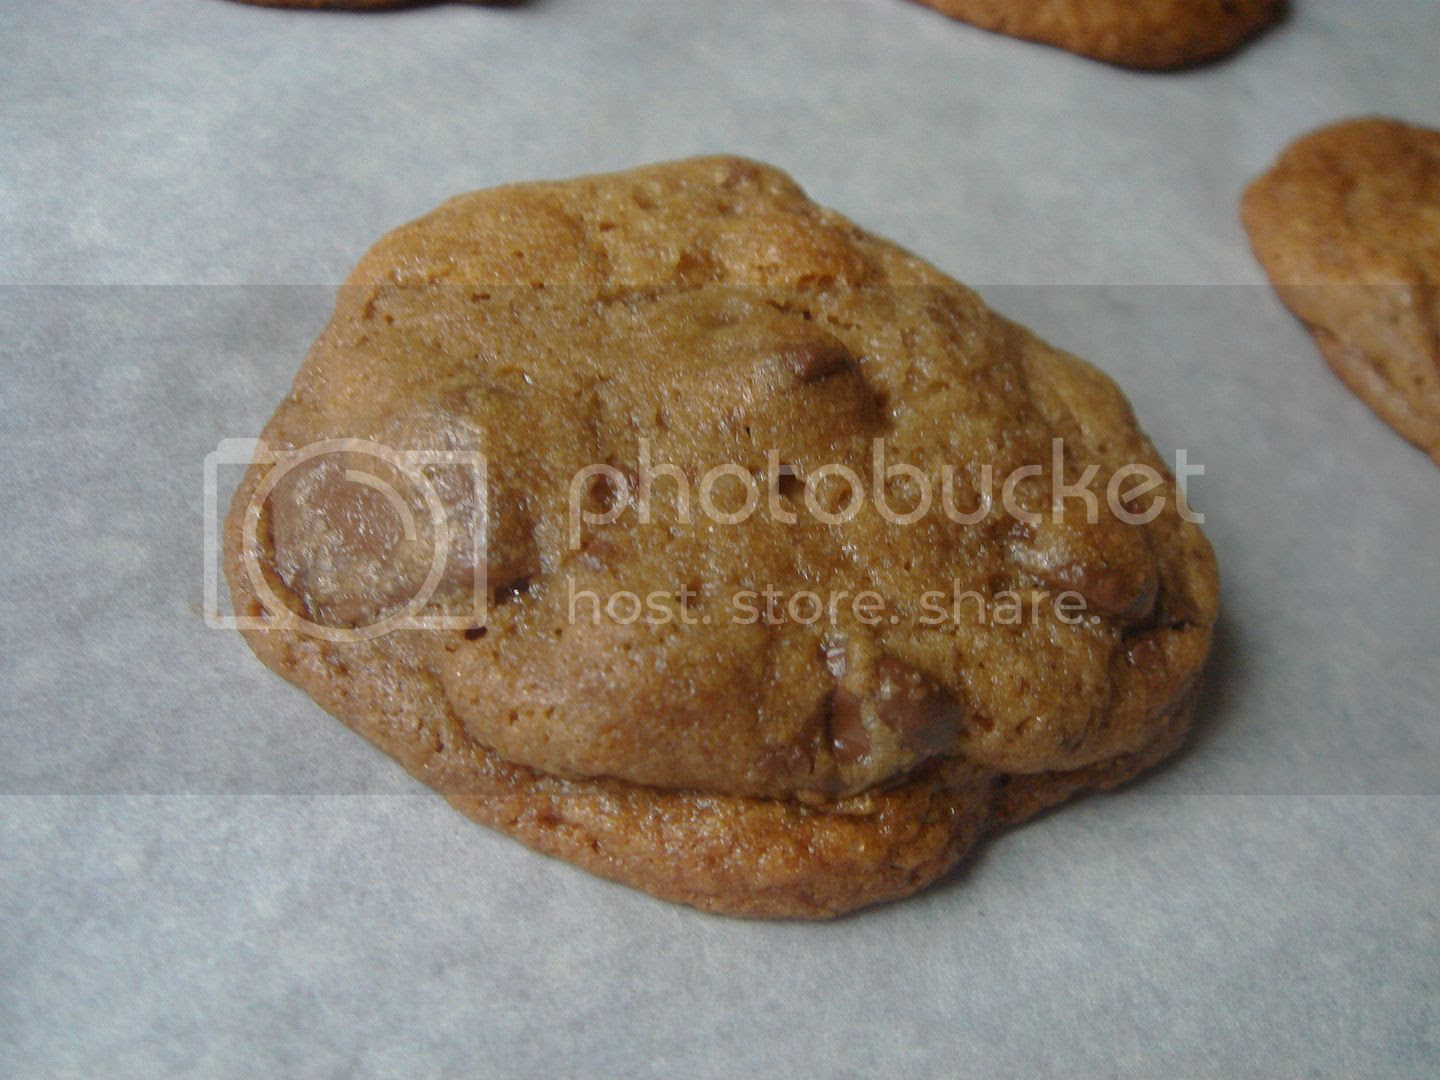 it's a cookie